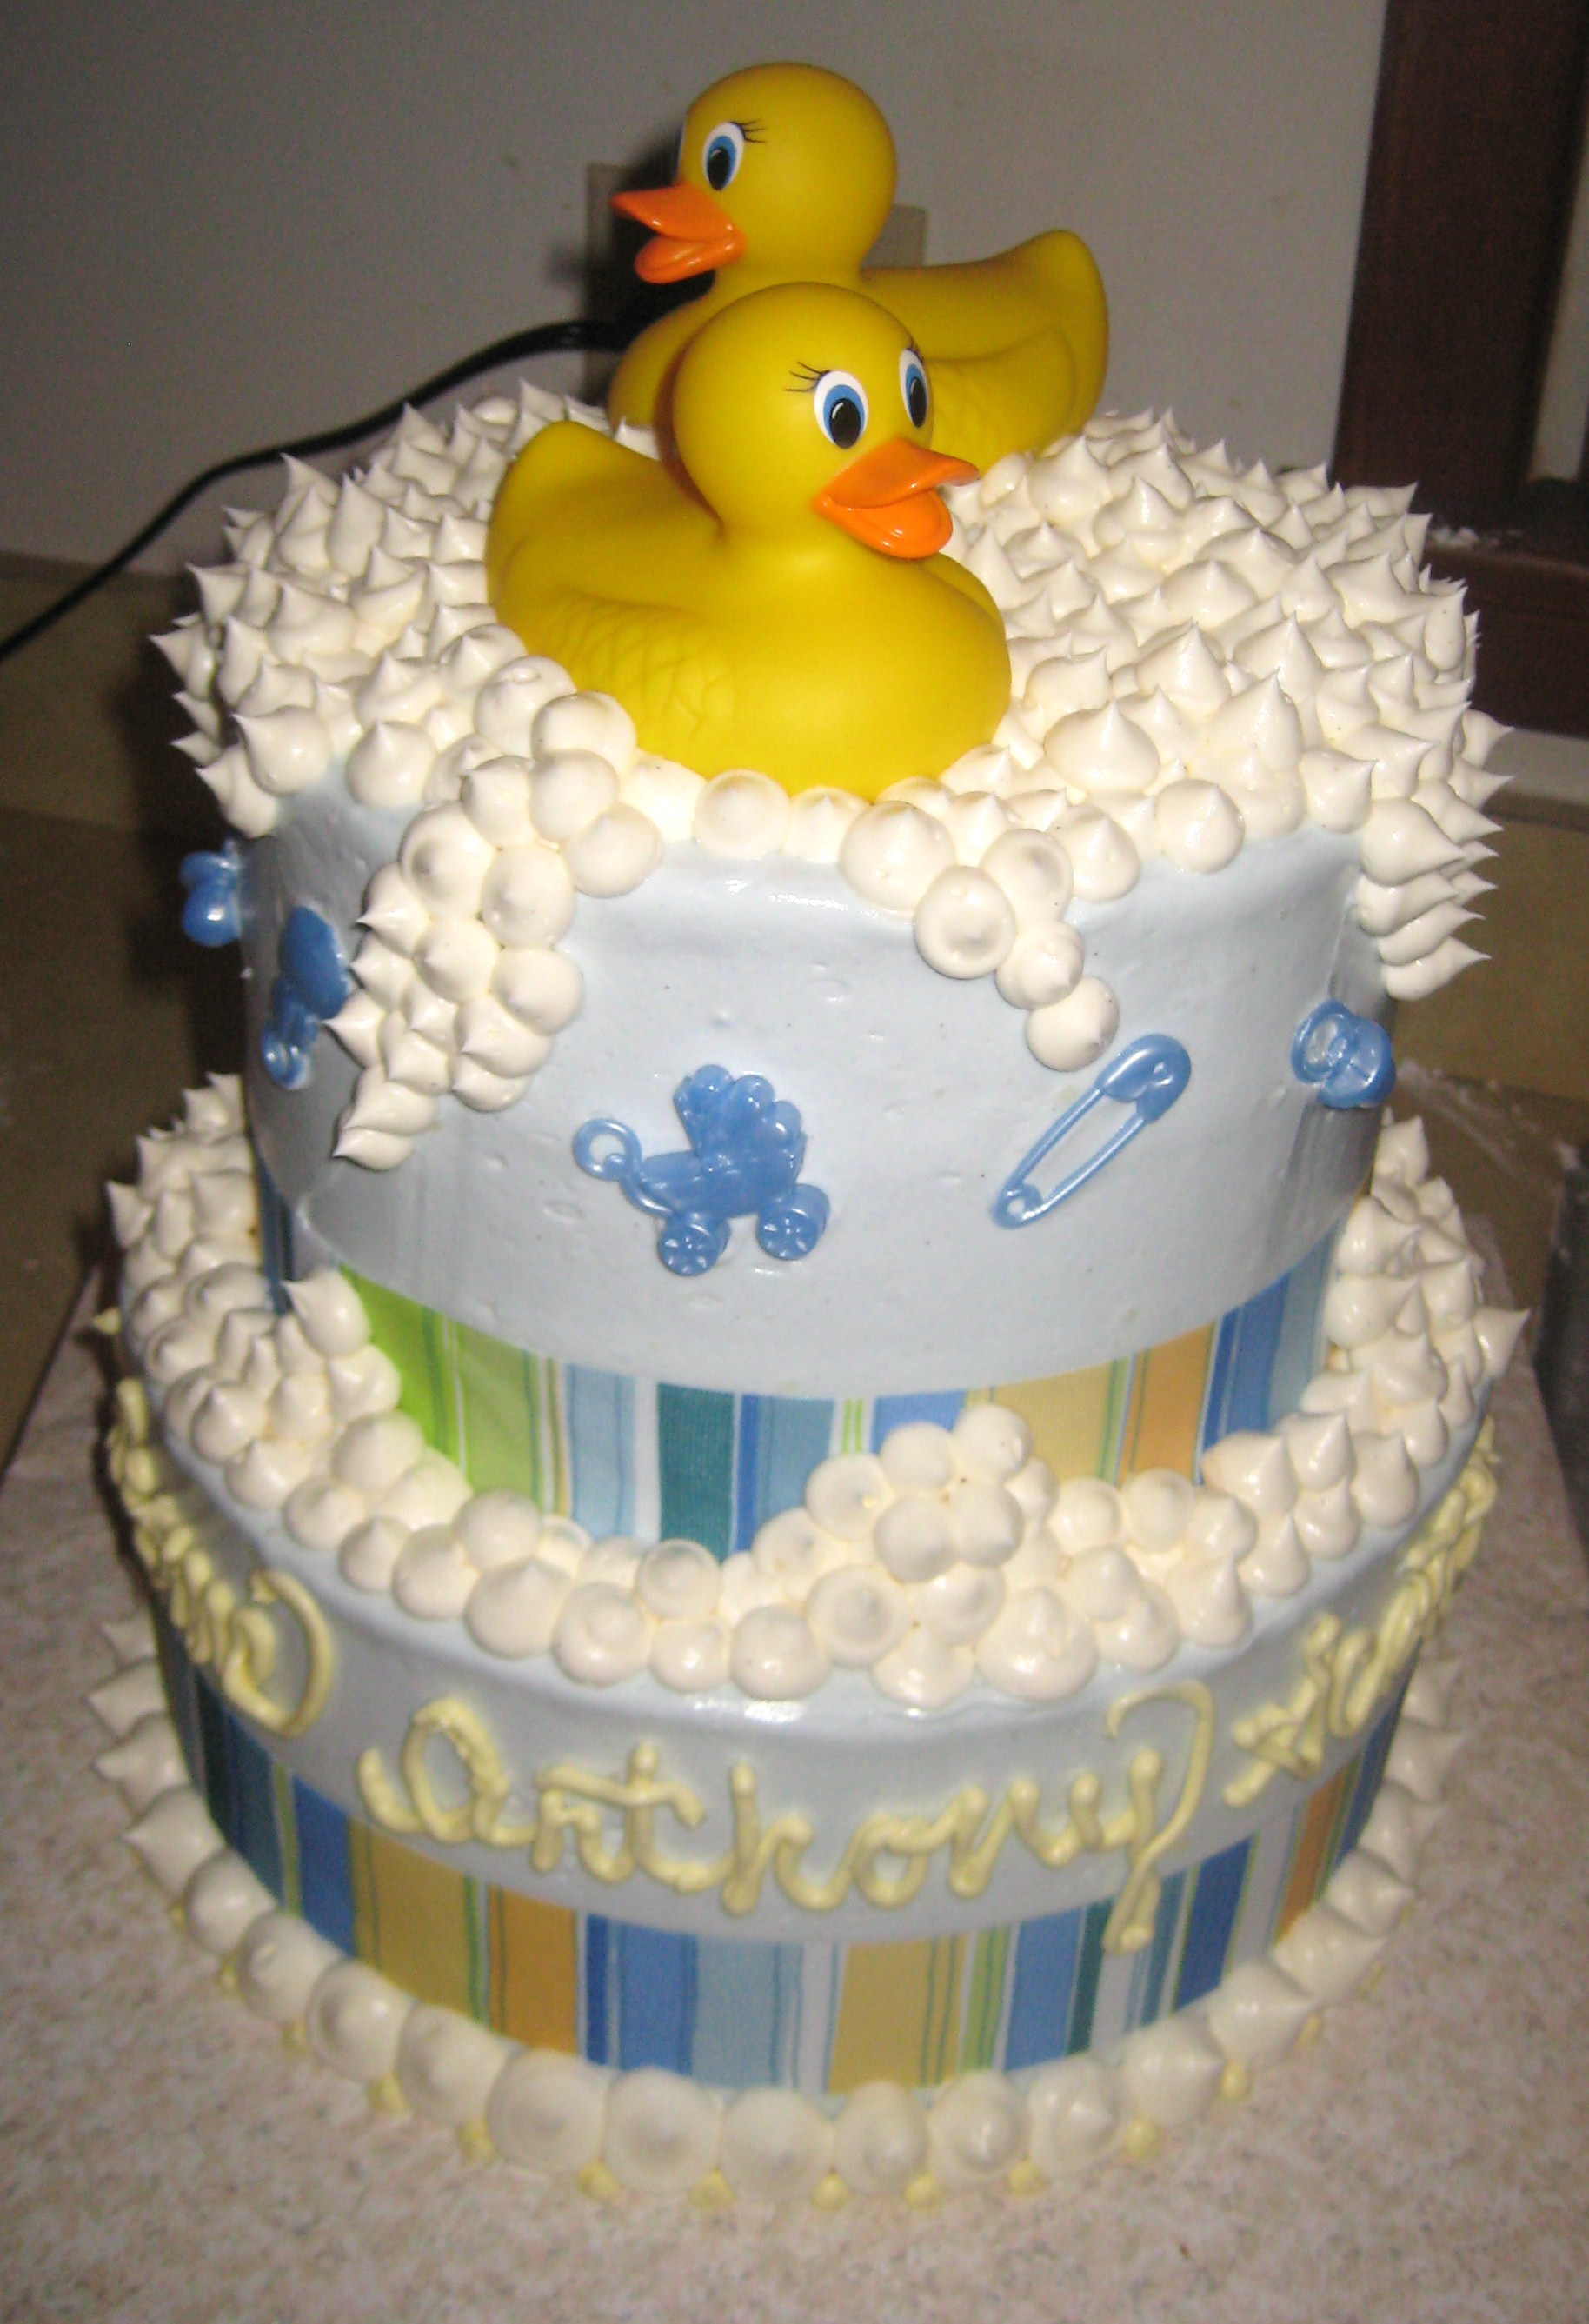 Cake Flavor Ideas For Baby Shower : BASKIN ROBBINS CAKE PRICES All Cake Prices